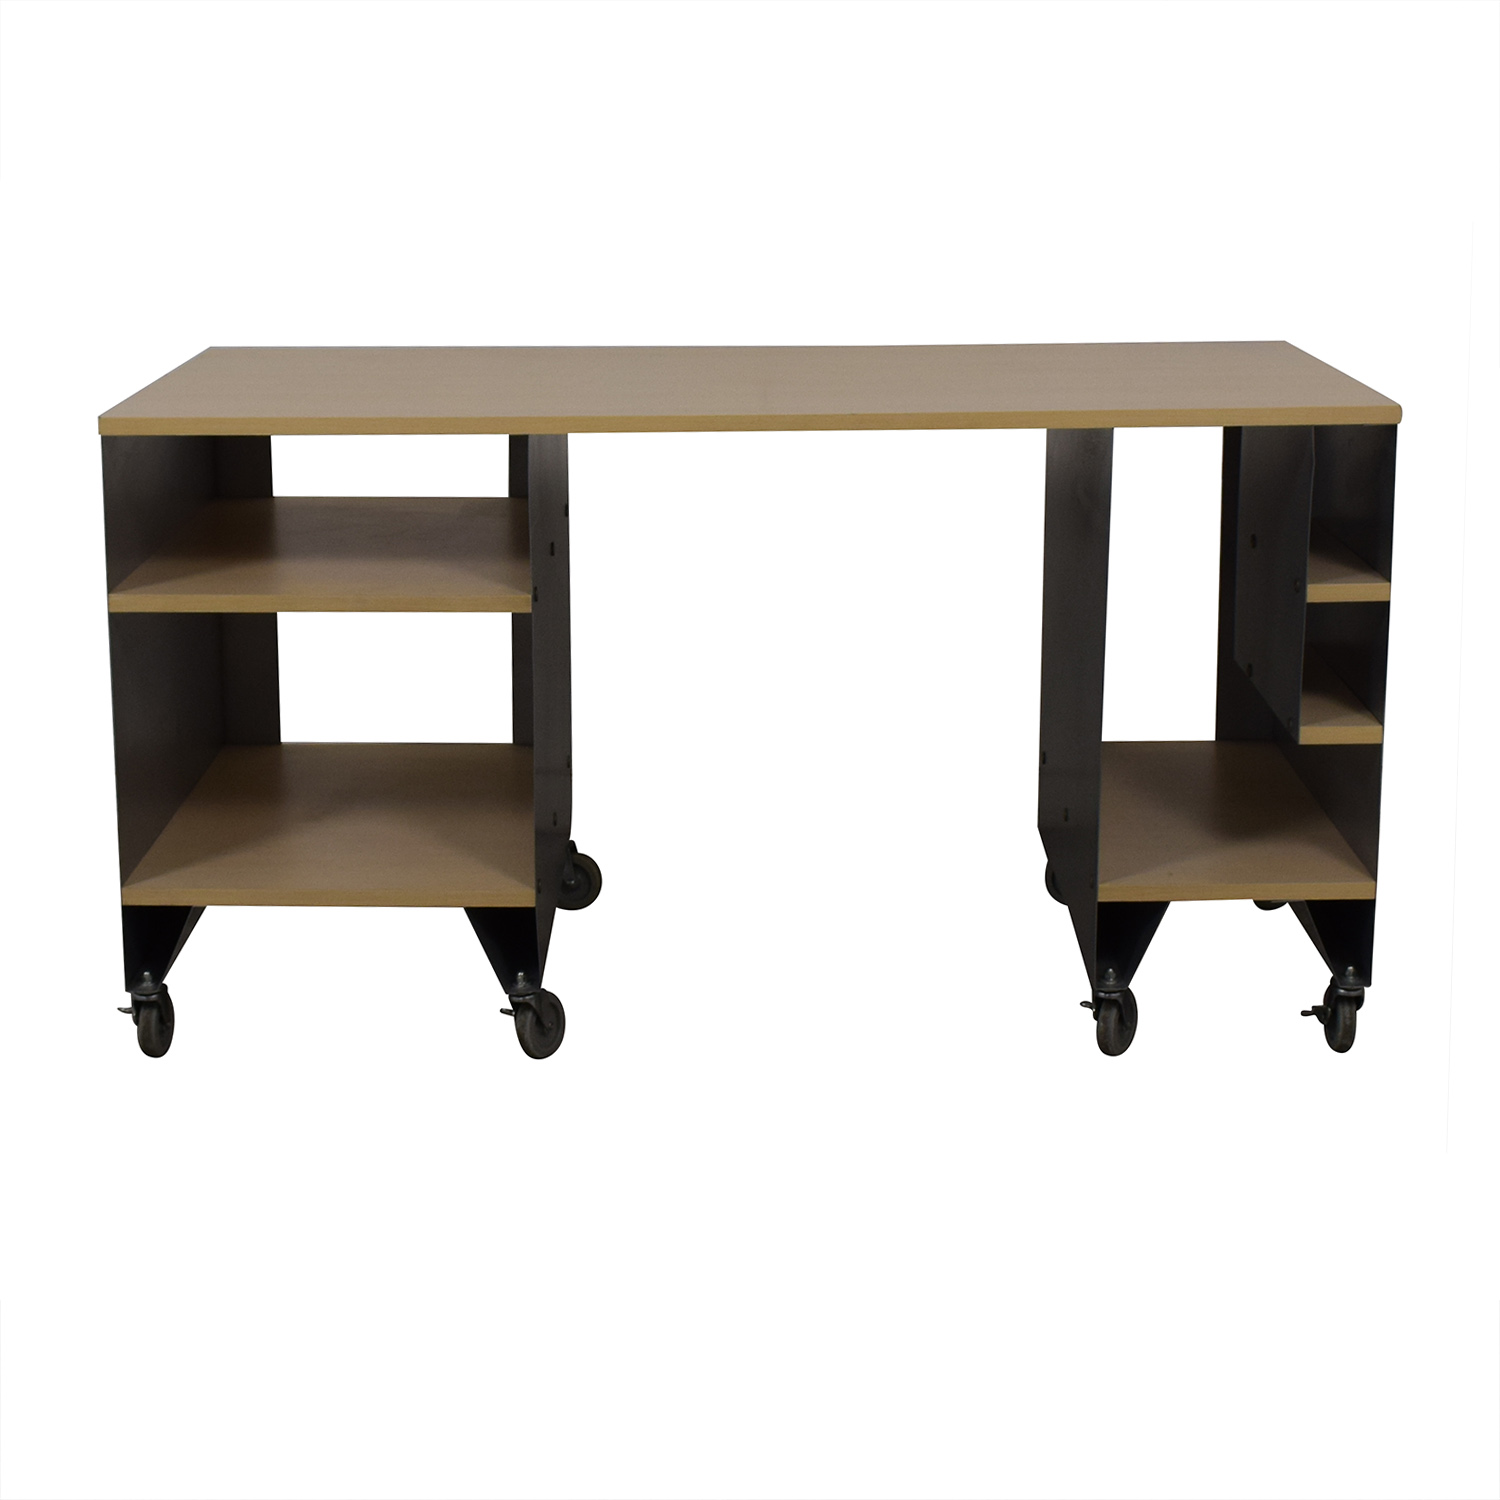 76 Off The Container Store The Container Store Rolling Desk Tables